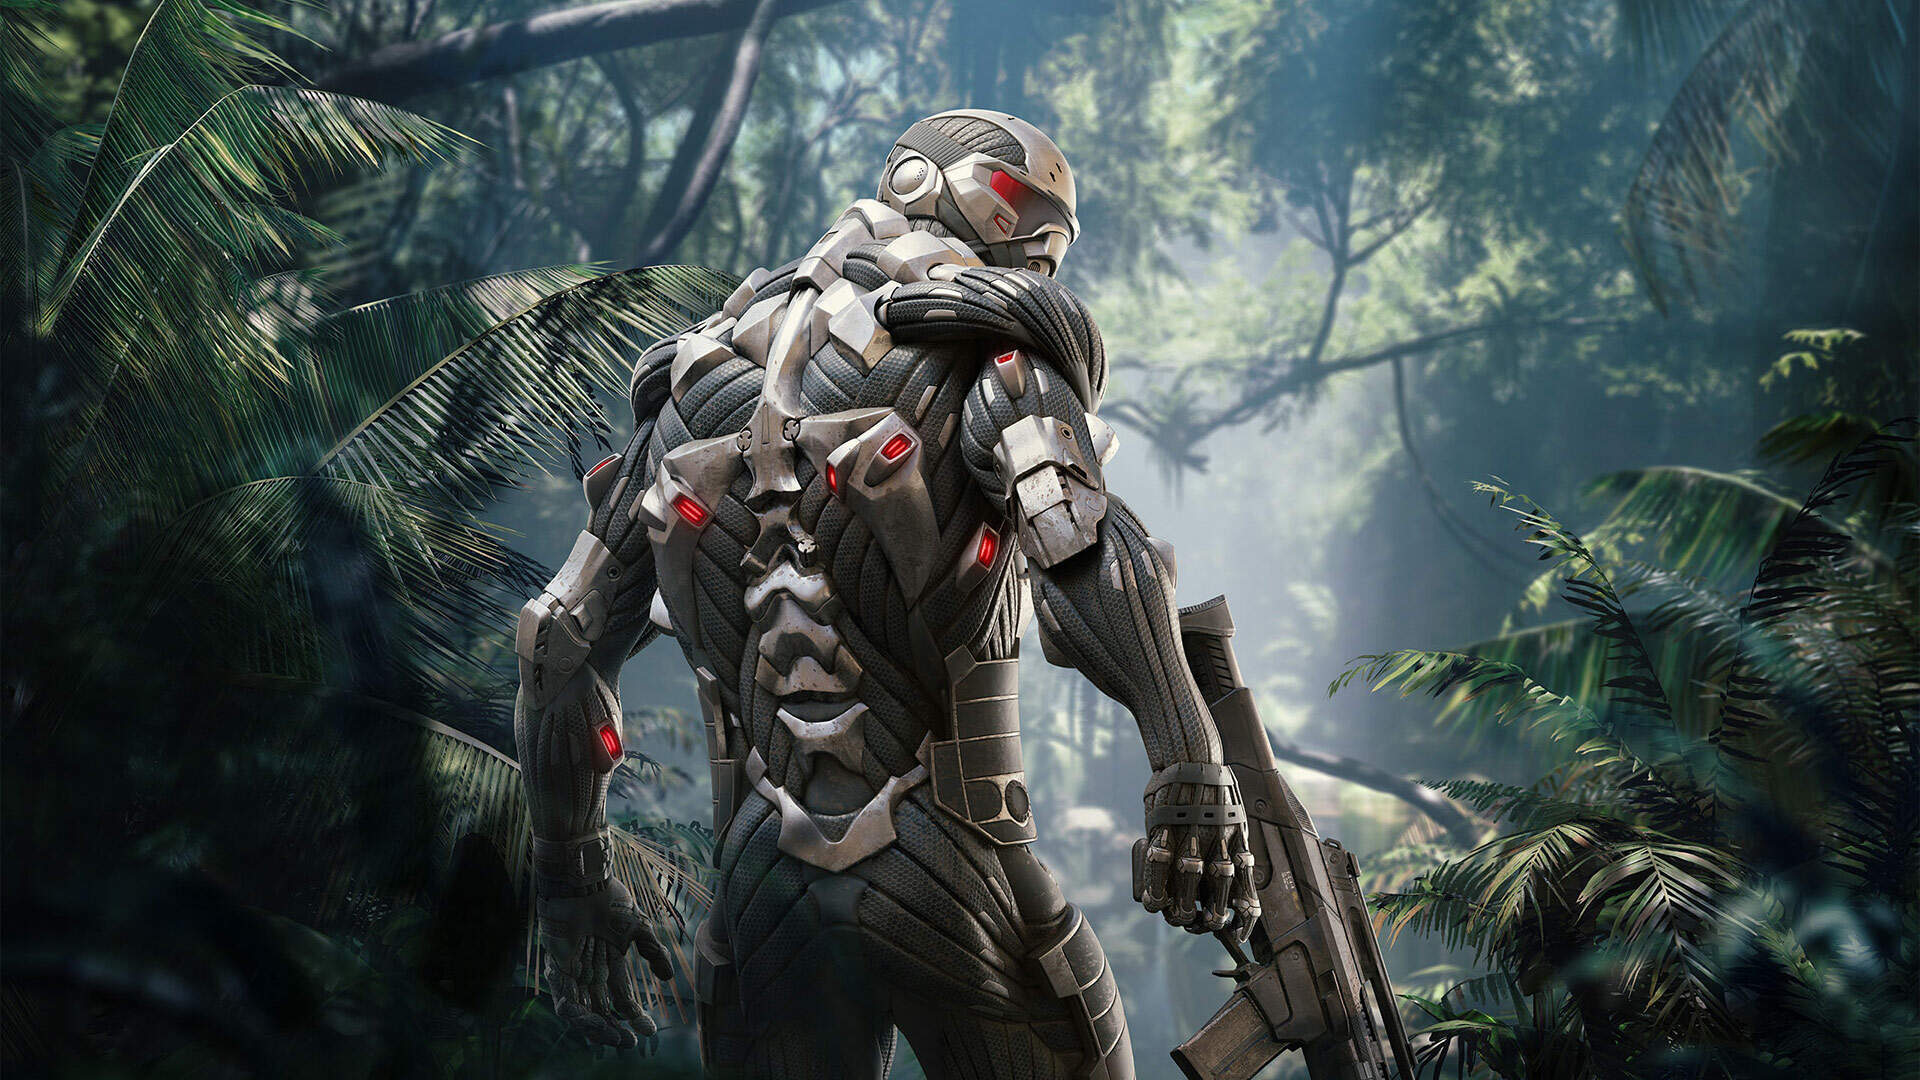 Crysis Remastered Leaves the Switch Jungle for PC and Other Consoles Soon